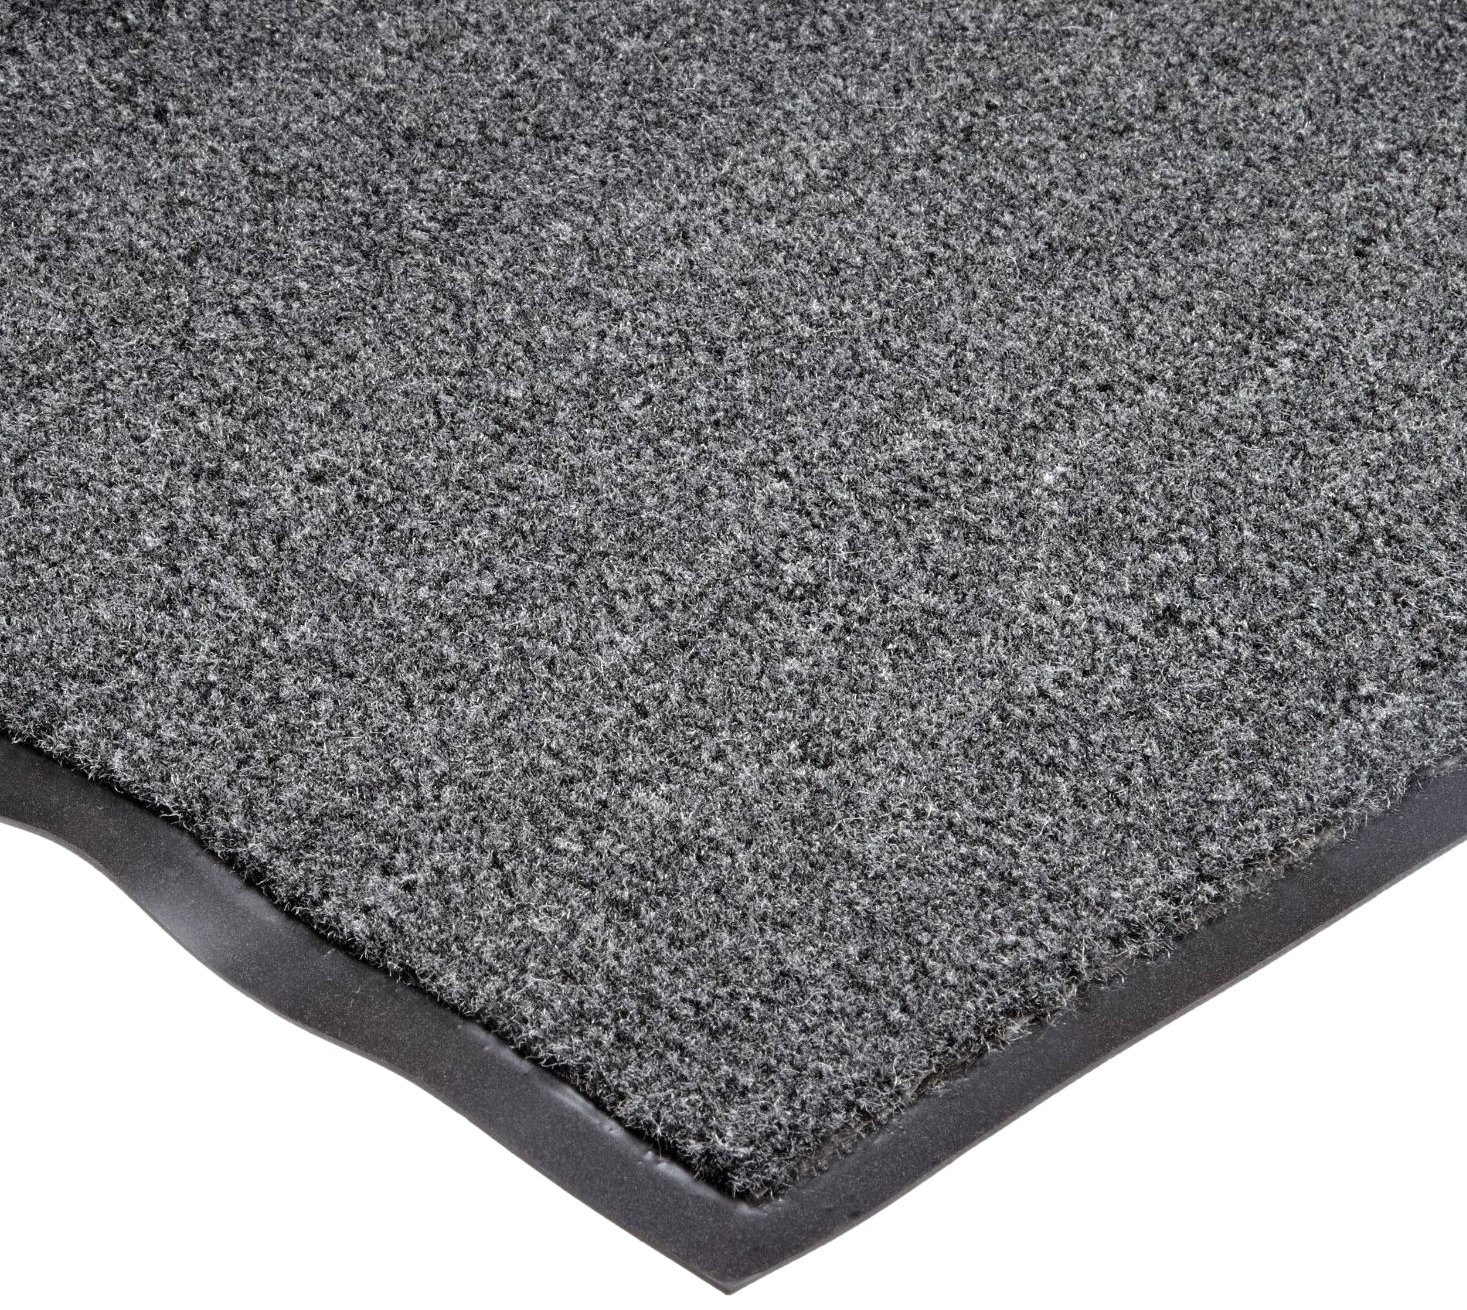 NoTrax T37 Fiber Atlantic Olefin Entrance Carpet Mat, for Wet and Dry Areas, 3' Width x 5' Length x 3/8'' Thickness, Gun Metal by NoTrax Floor Matting